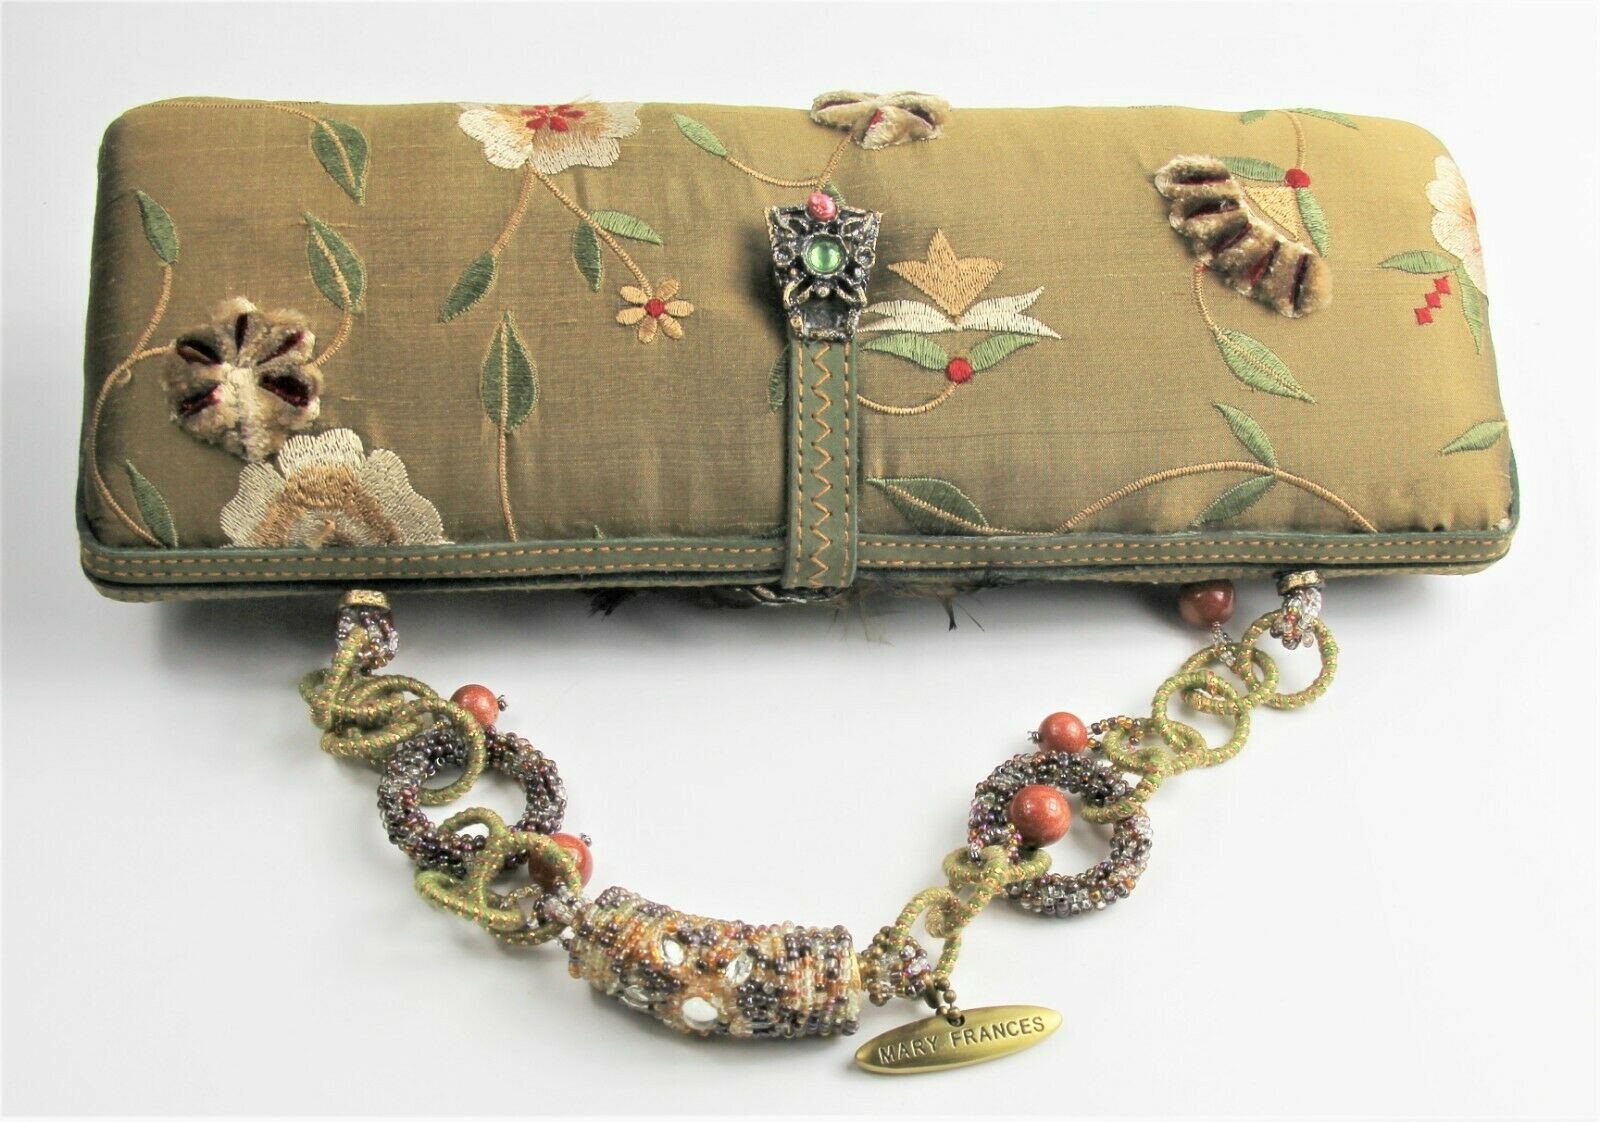 MARY FRANCES PURSE POCKETBOOK HAND BAG CLUTCH HAND BEADED EMBROIDERED SILK